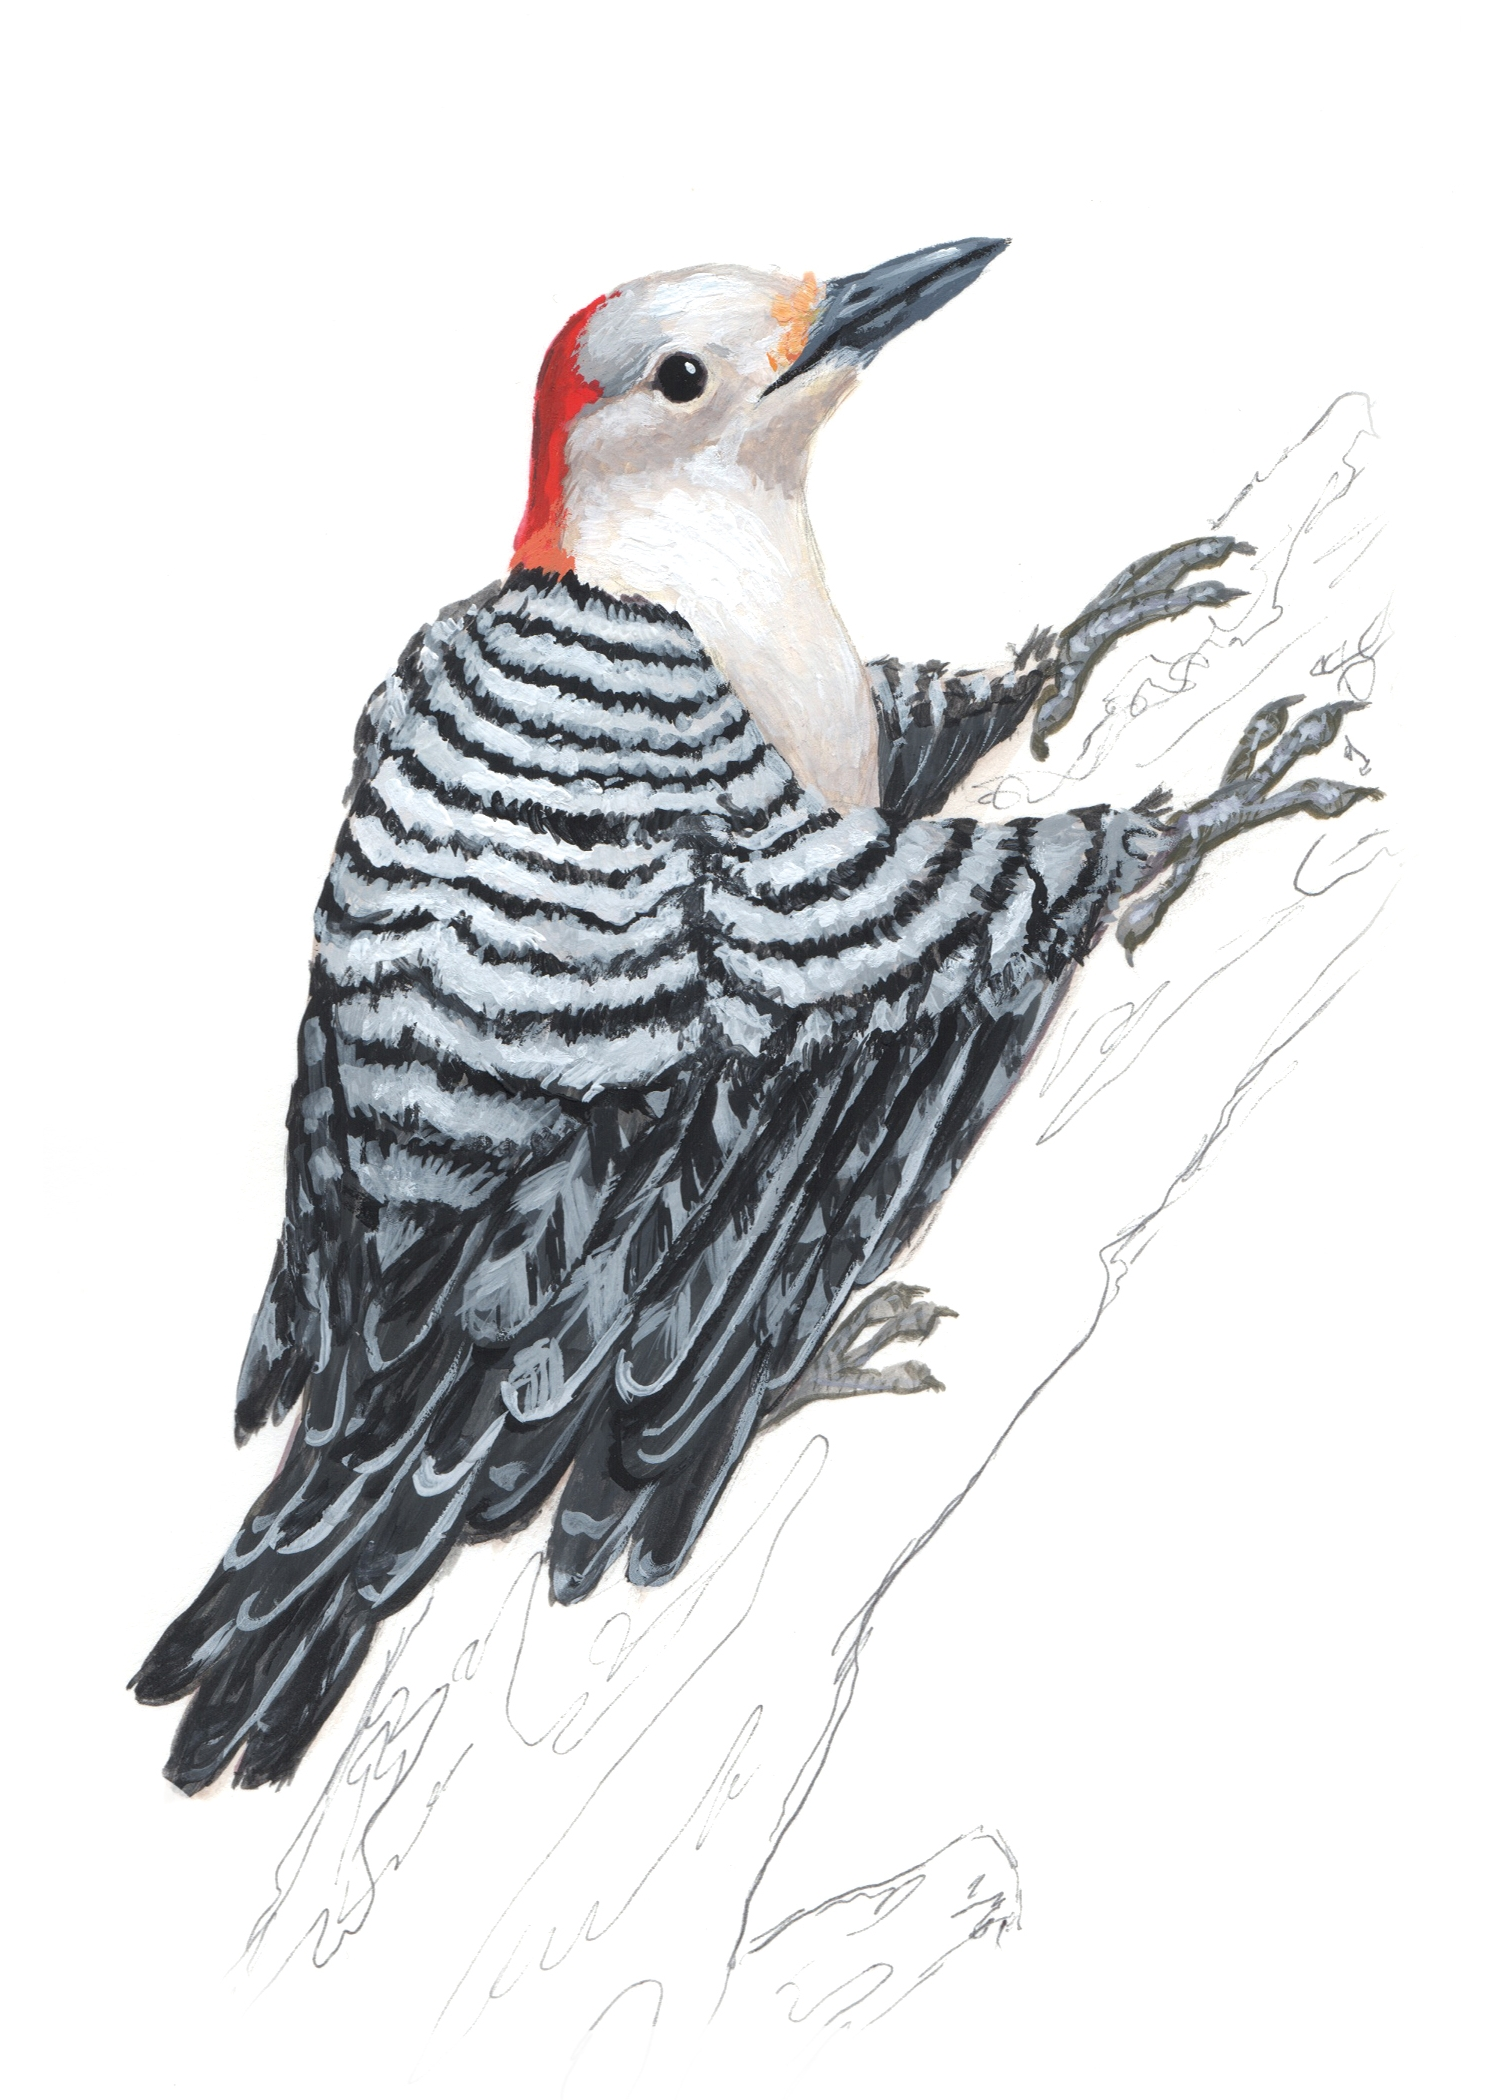 Woodpecker-Bird2.jpg